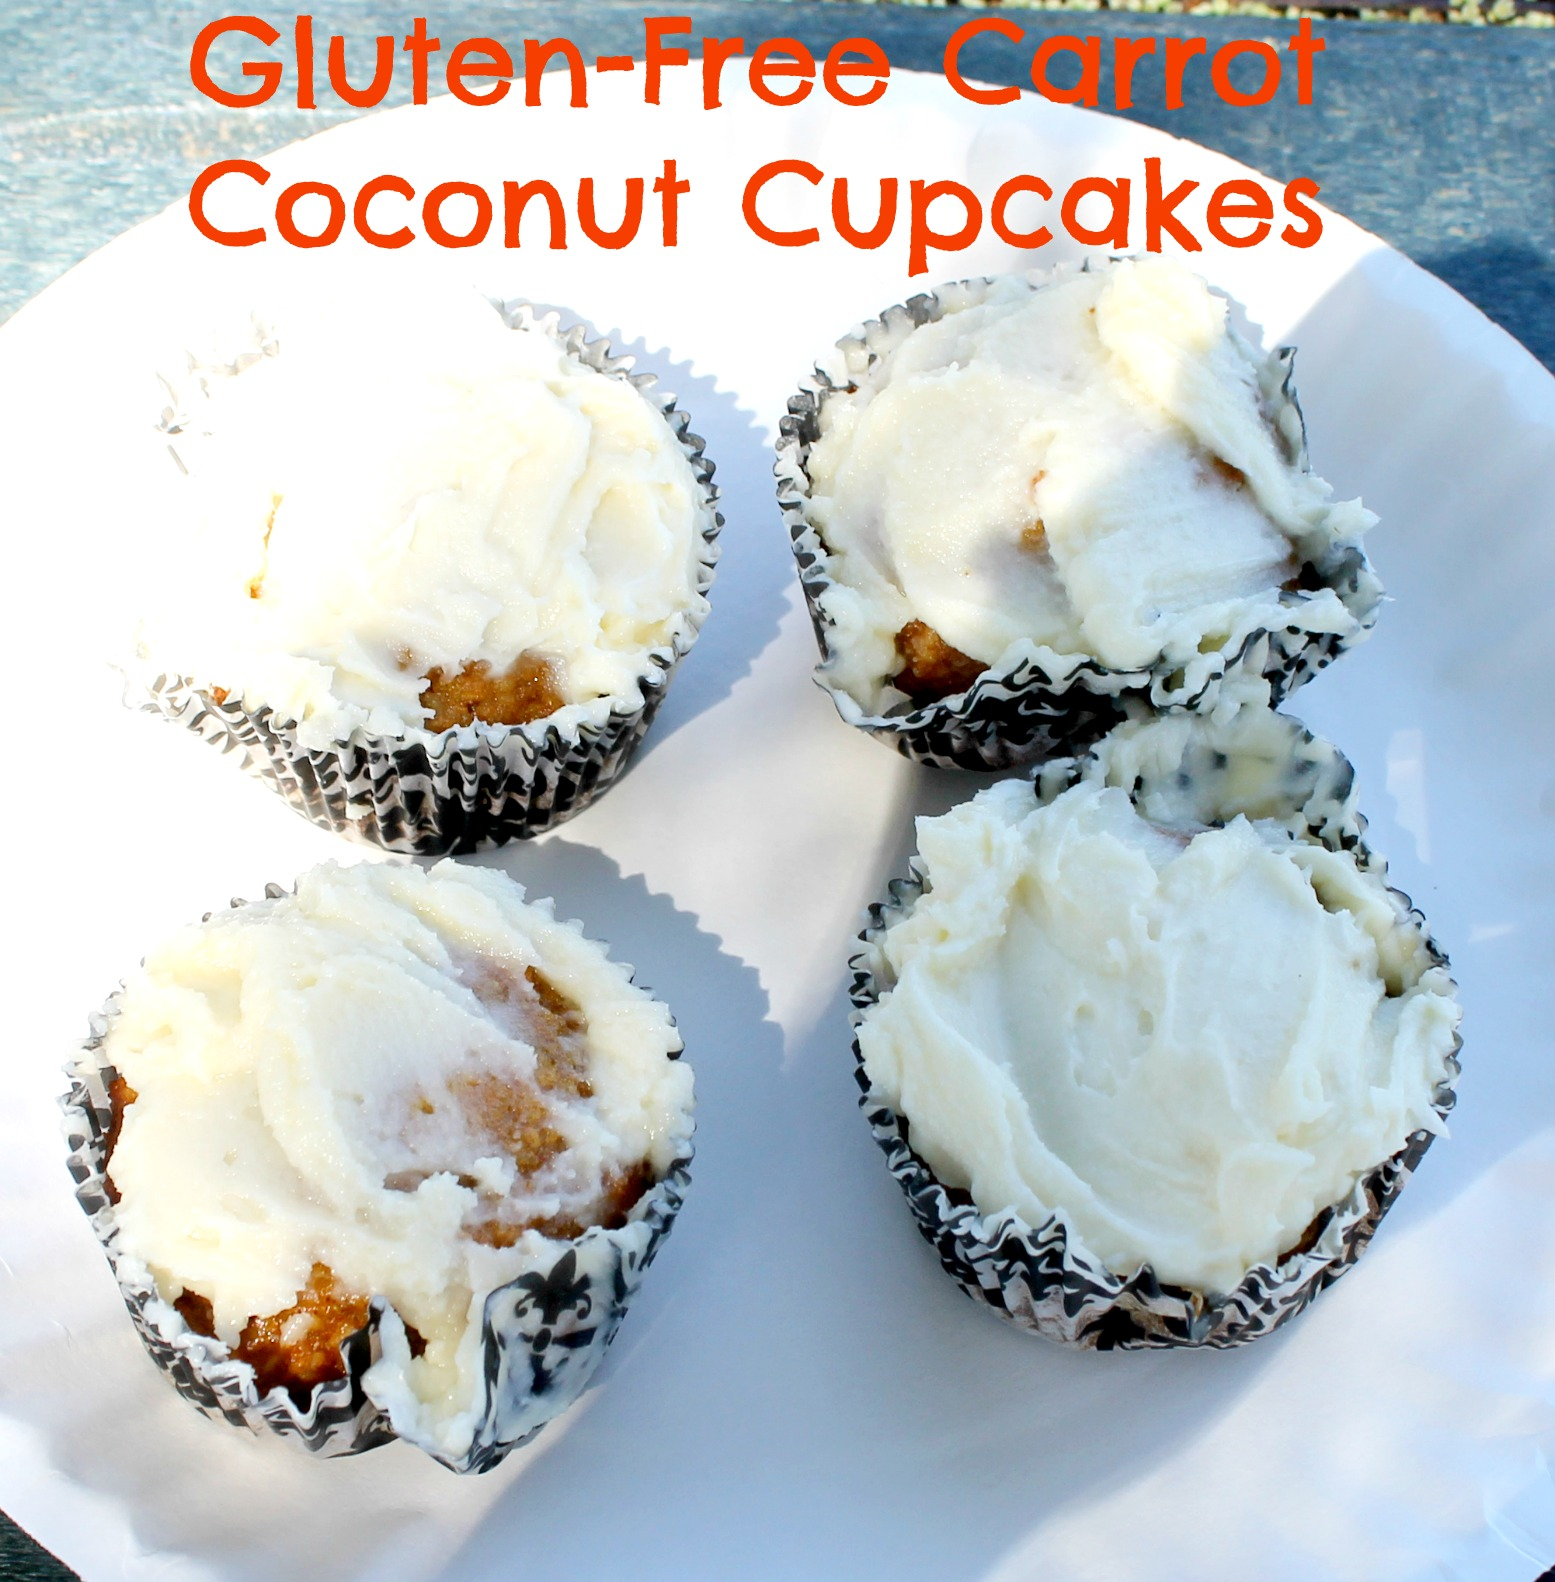 gluten free carrot coconut cupcakes pin